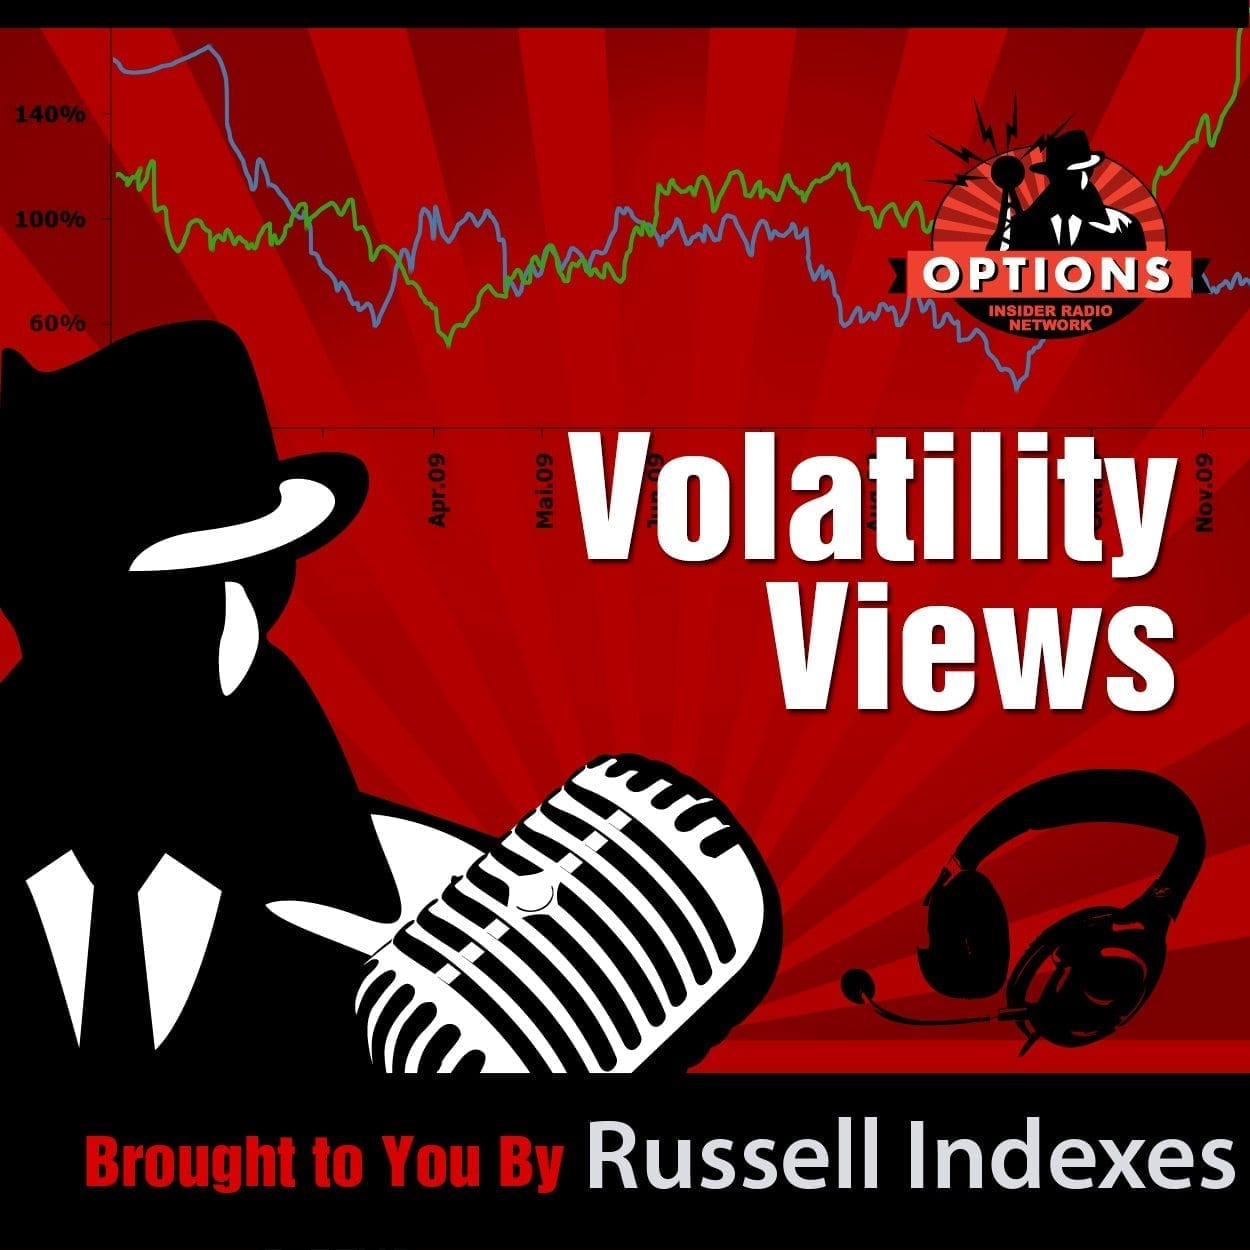 Volatility Views